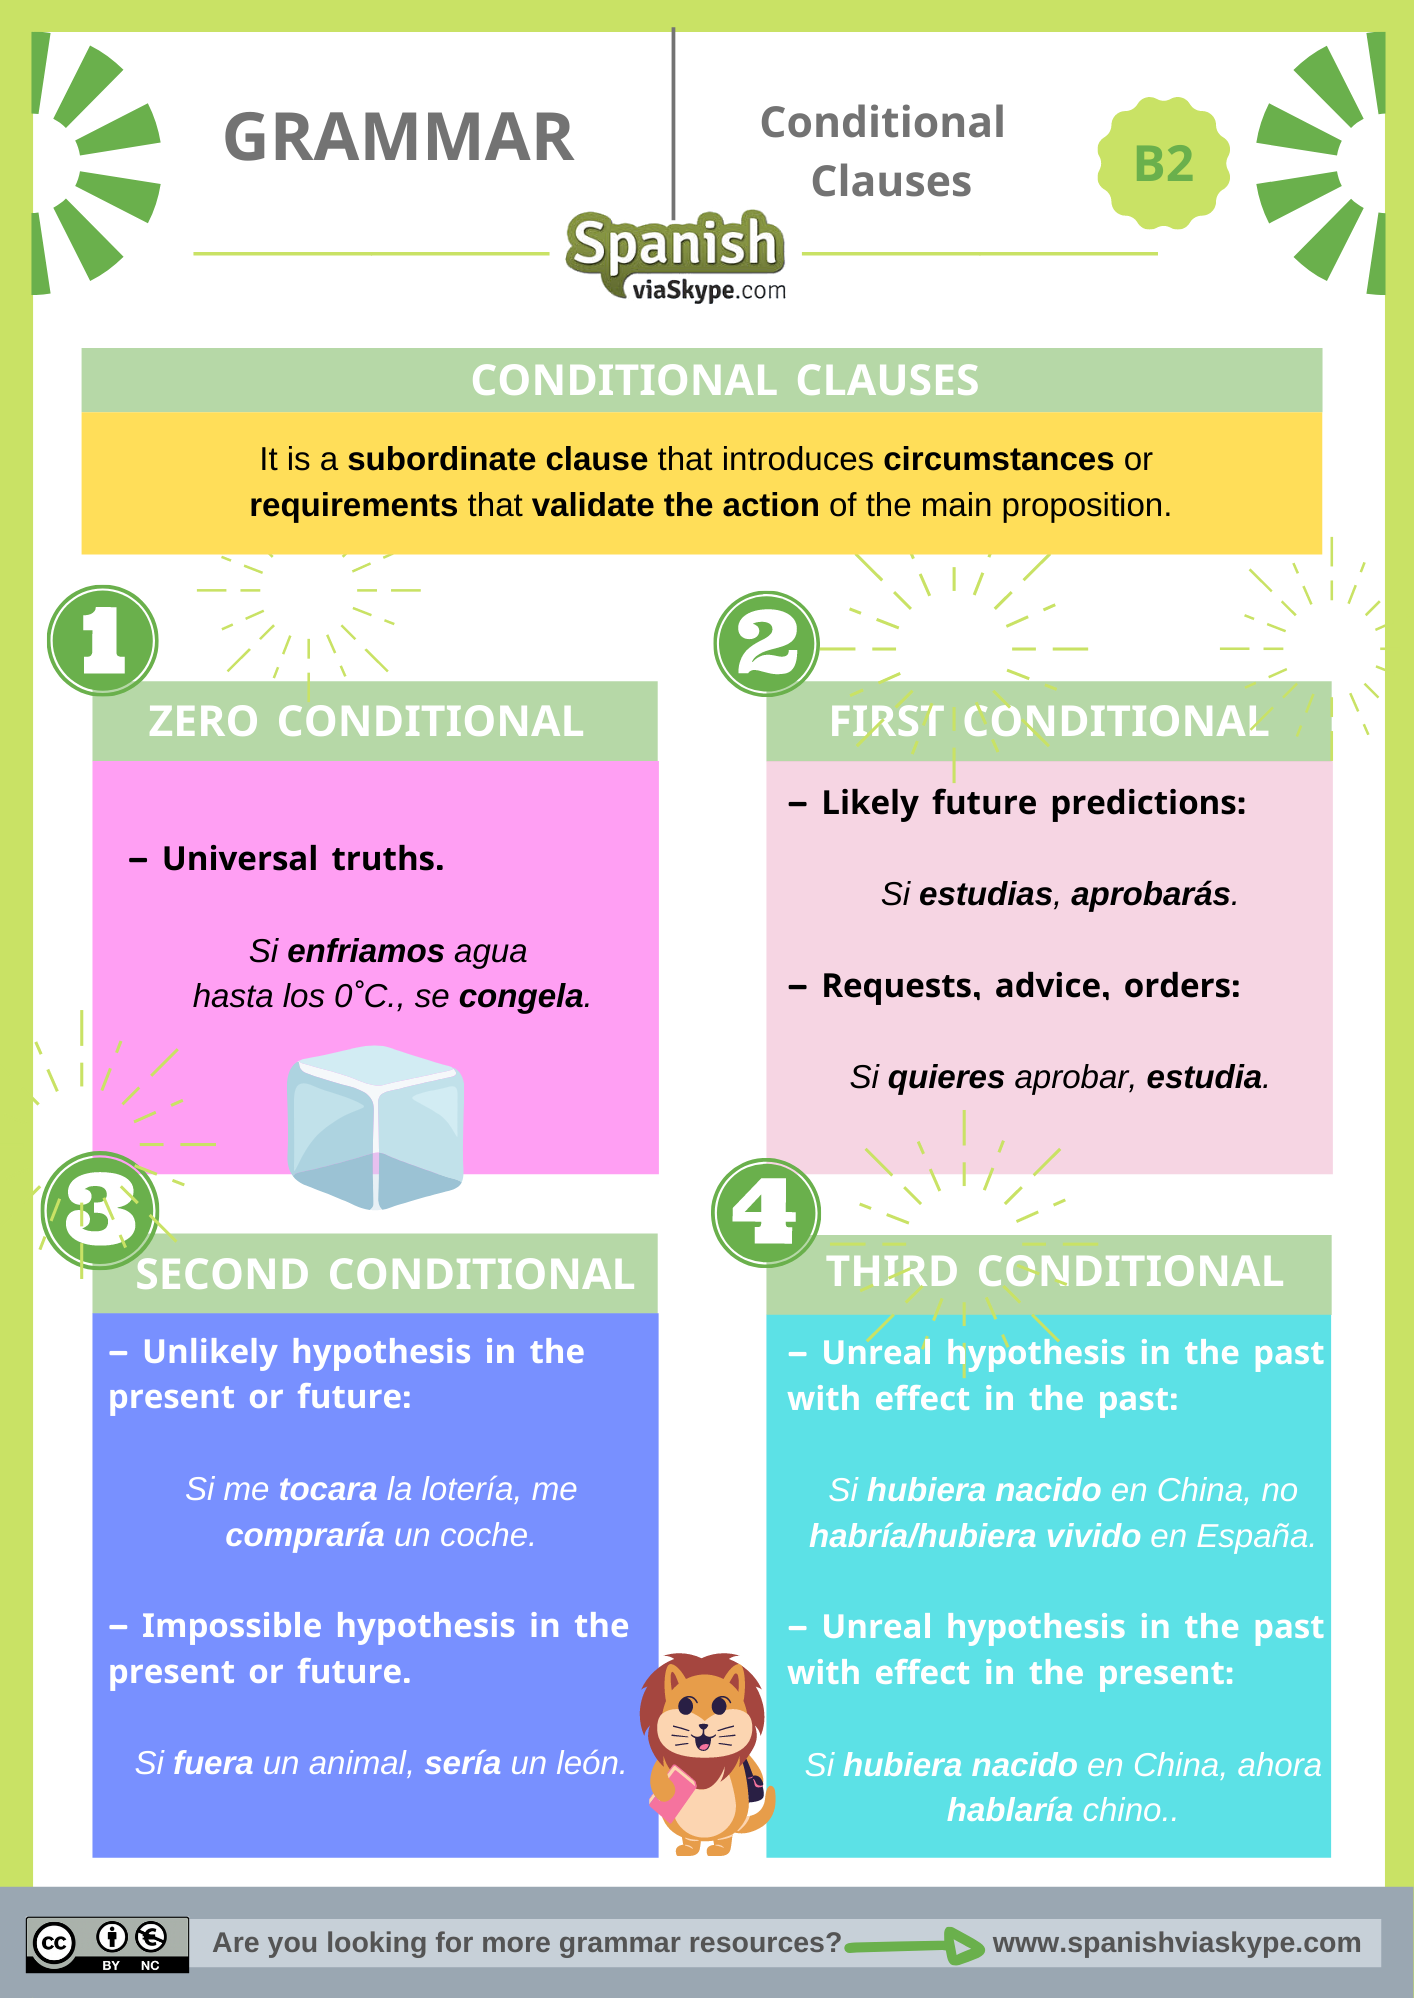 Infography about the conditional clauses in Spanish